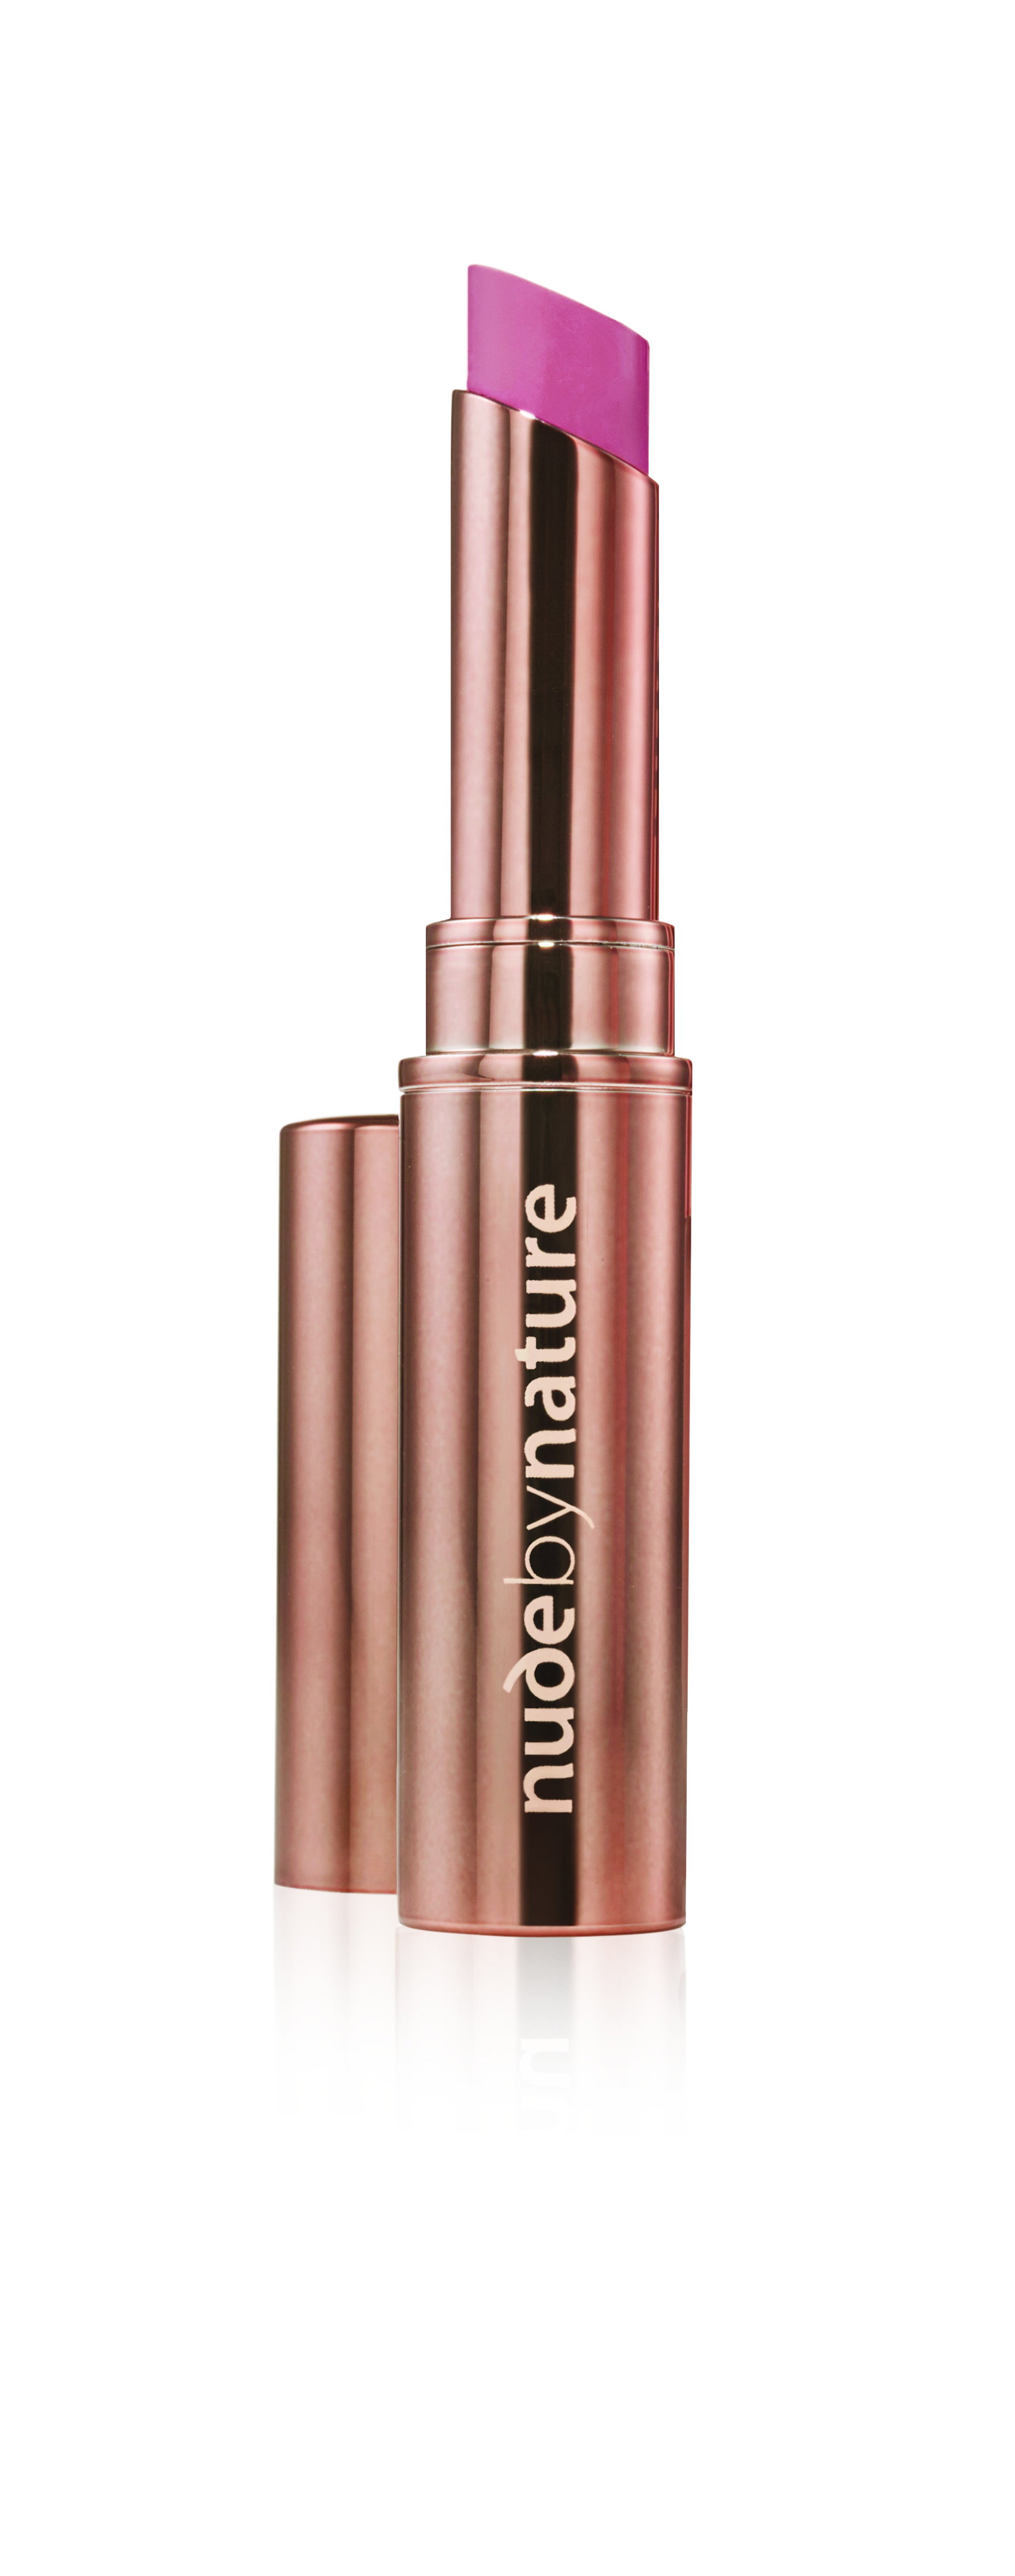 Nude by Nature - Creamy Matte Lipstick - 06 Coral Pink